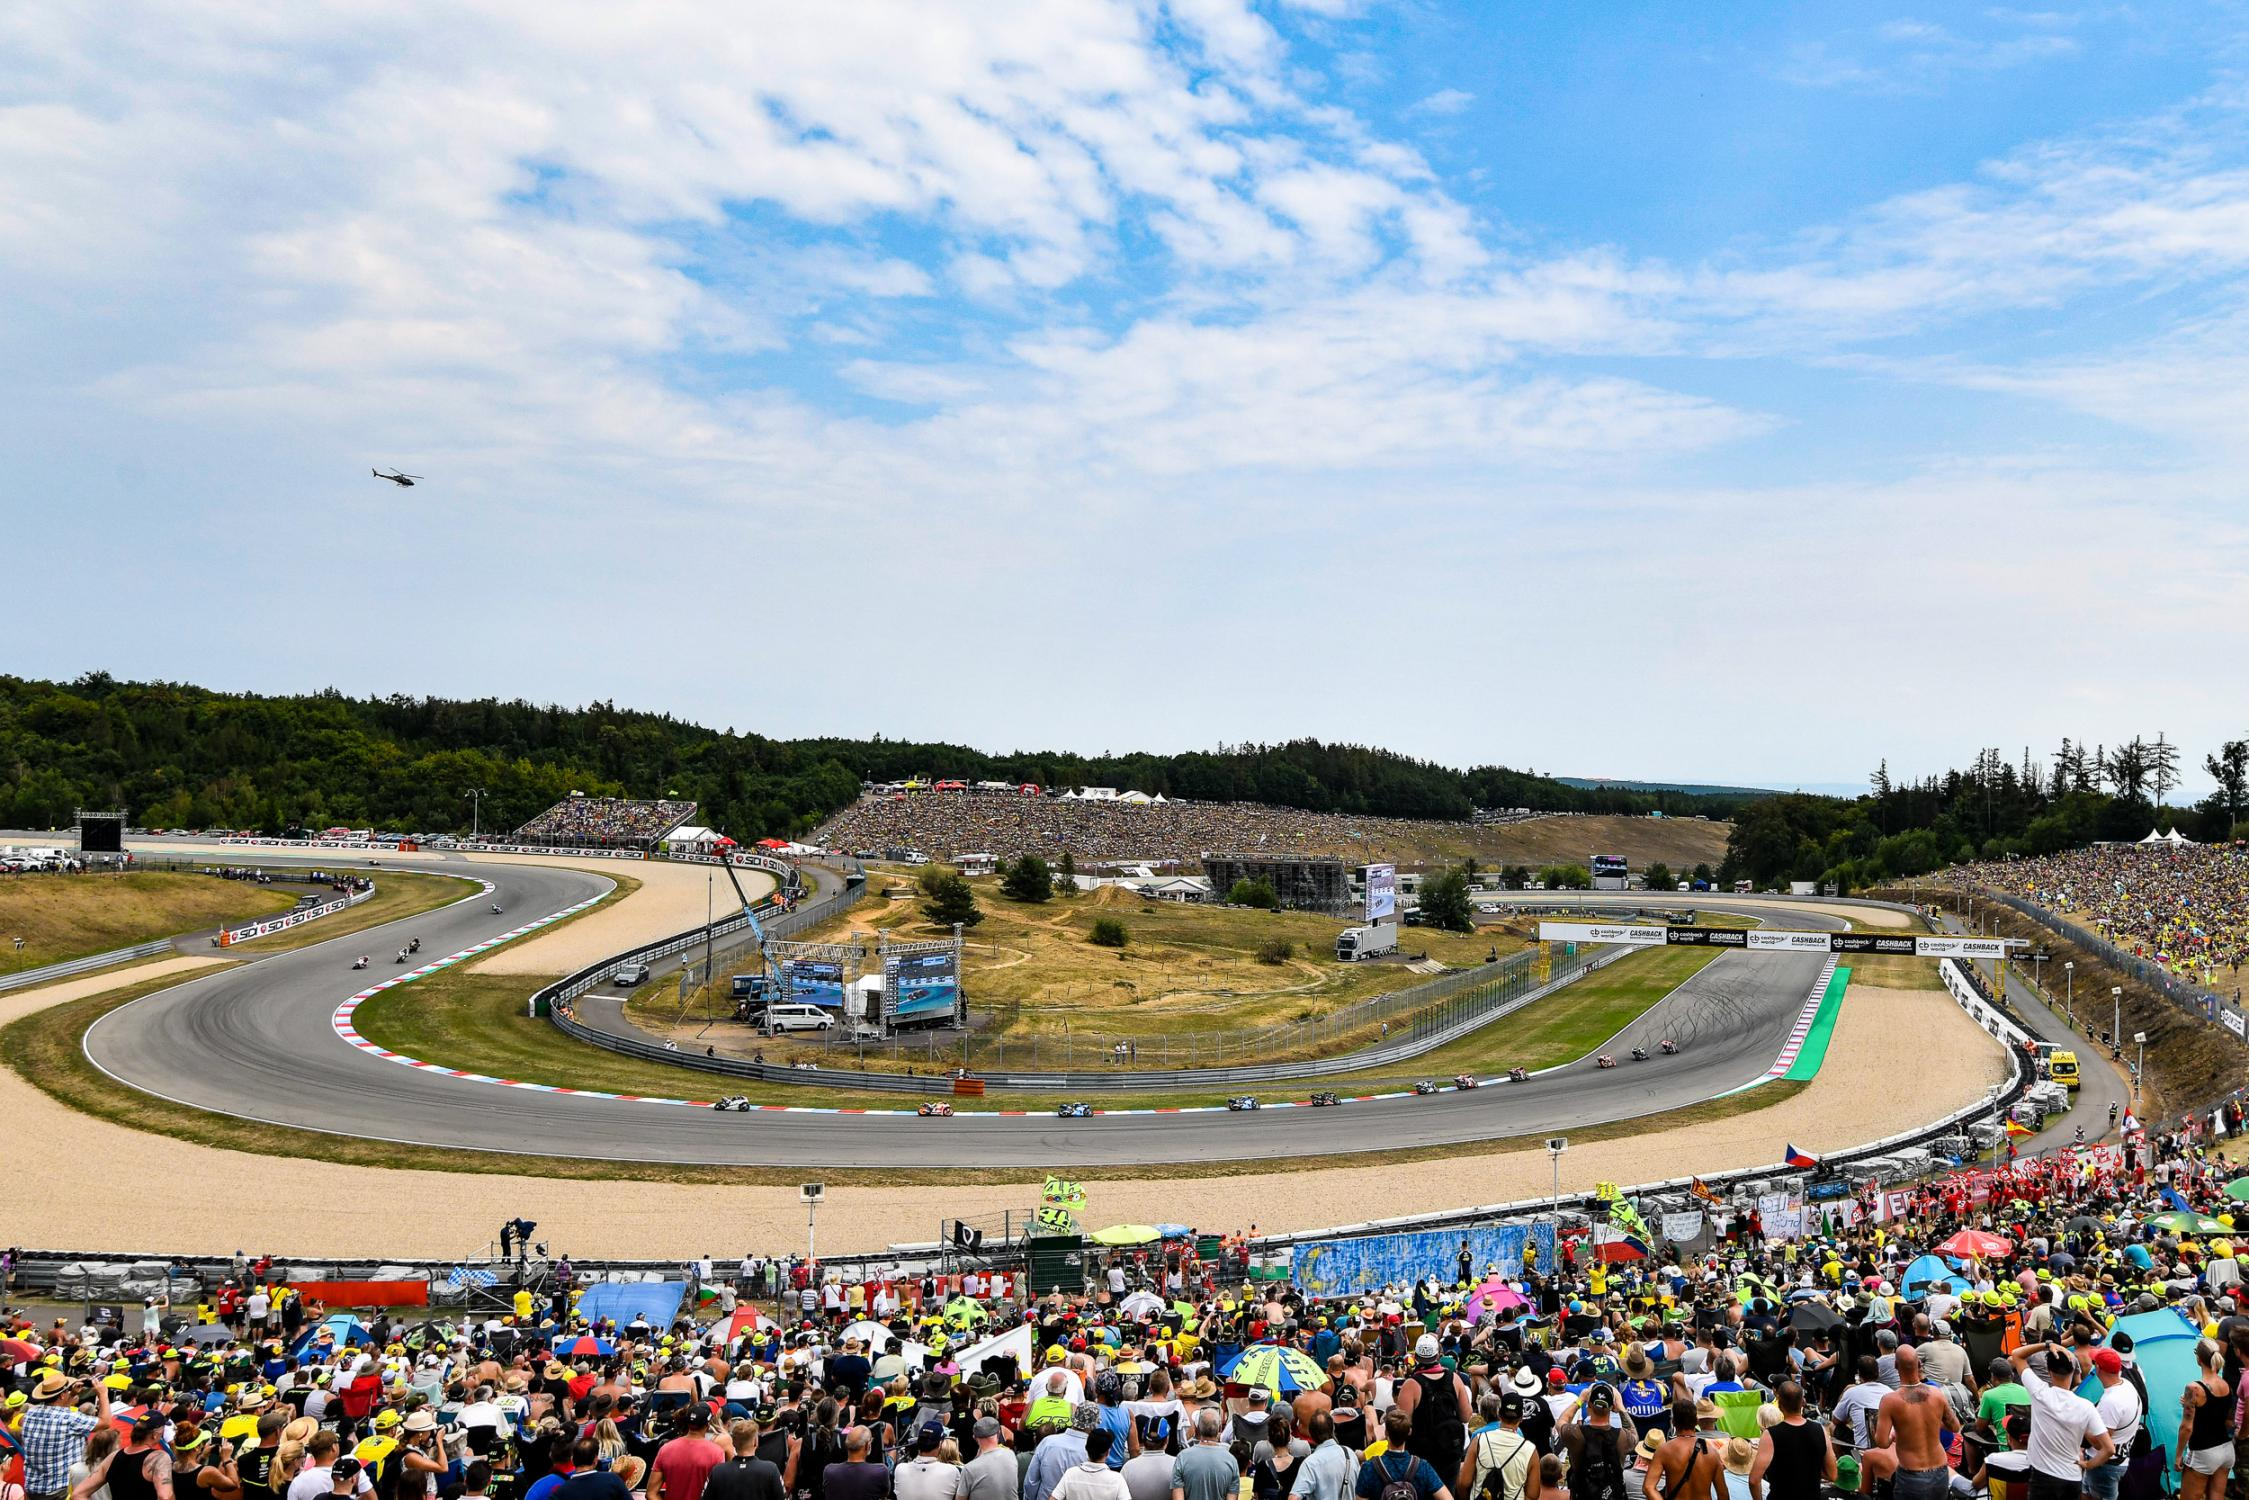 Circuito Brno Motogp : Motogp brno here we brno czech motogp race review